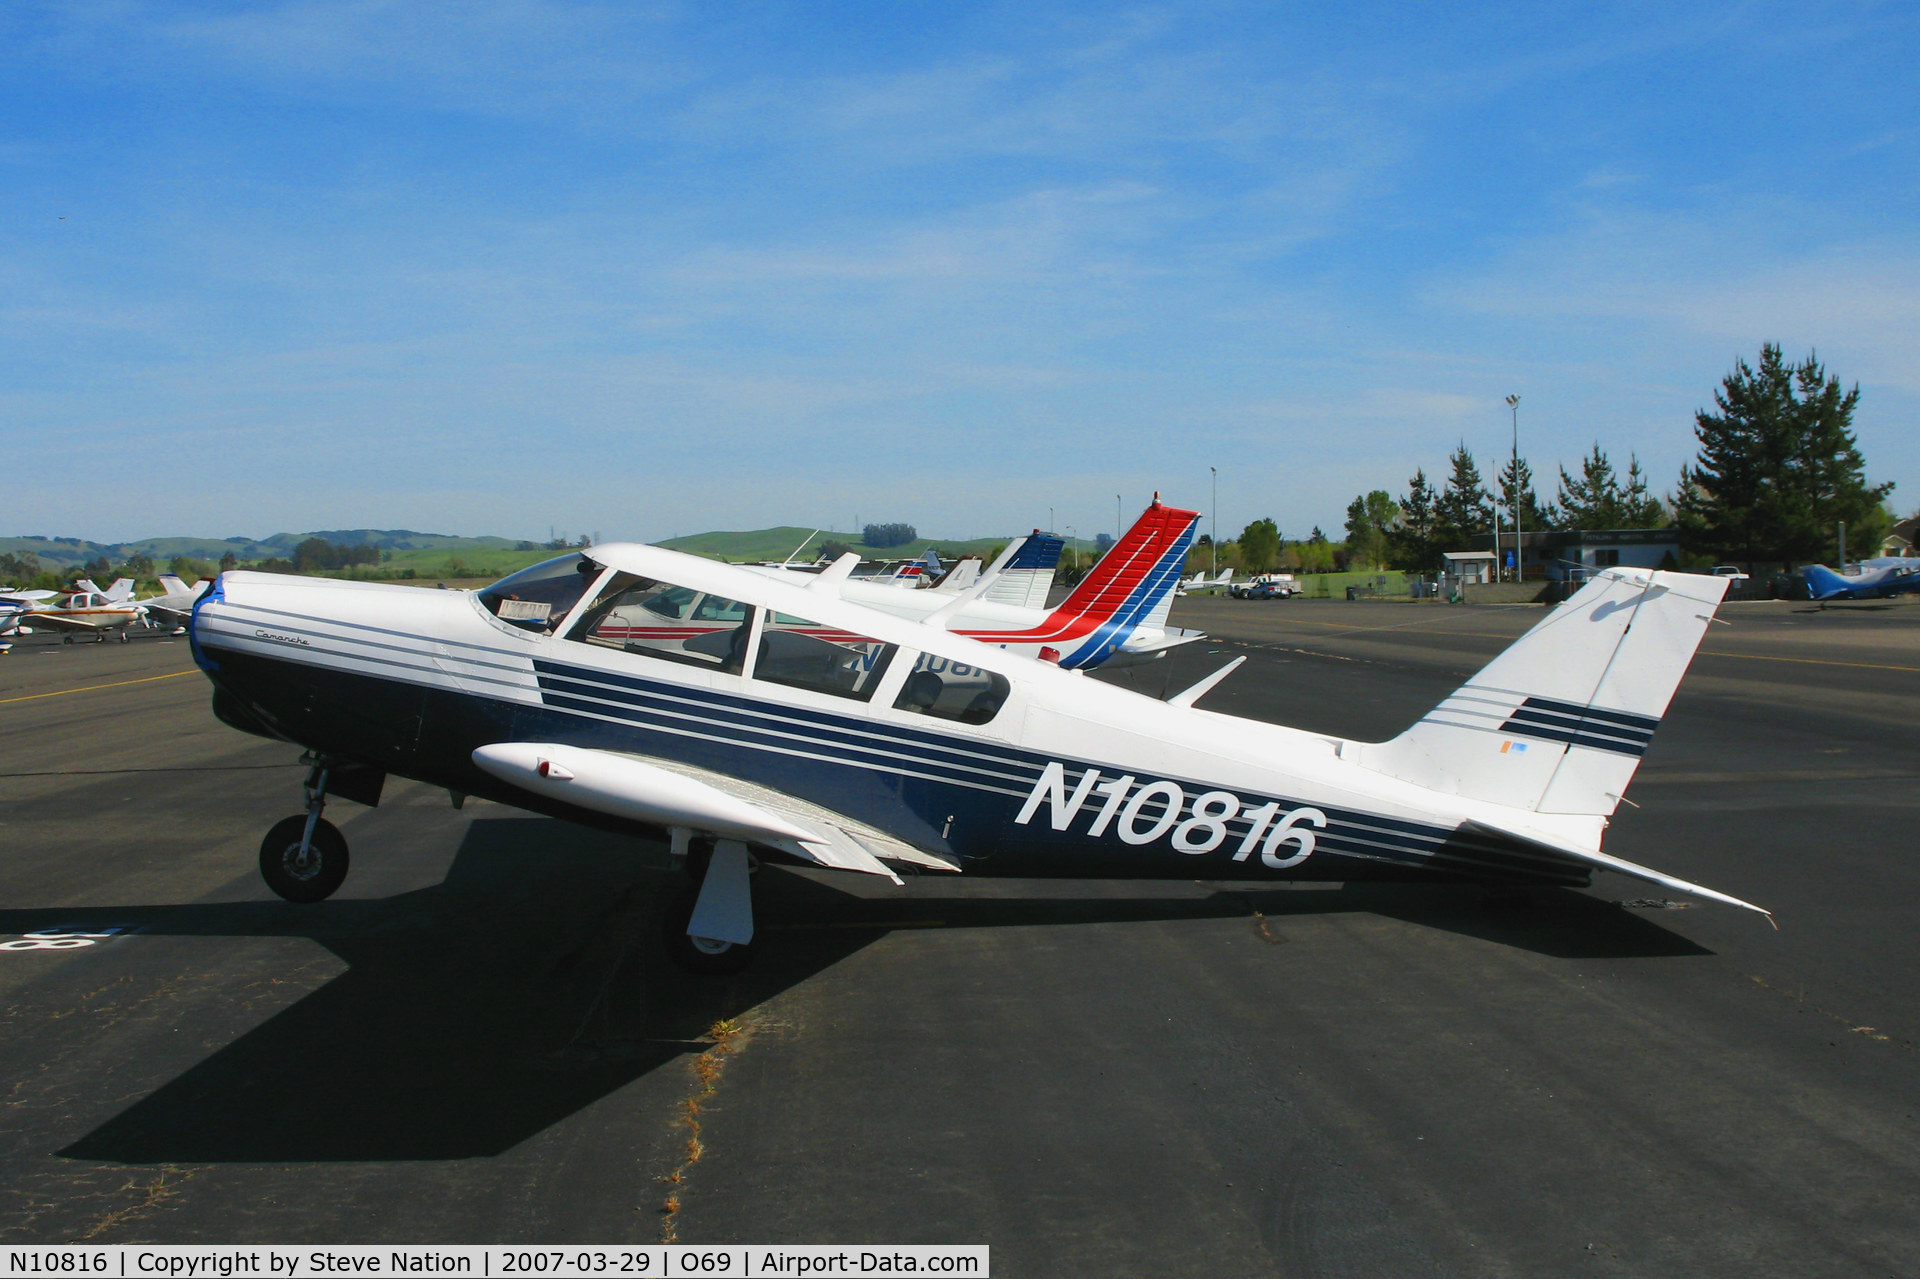 N10816, 1968 Piper PA-24-260 C/N 24-4753, 1968 Piper PA-24-260 resting on its tail @ Petaluma, CA